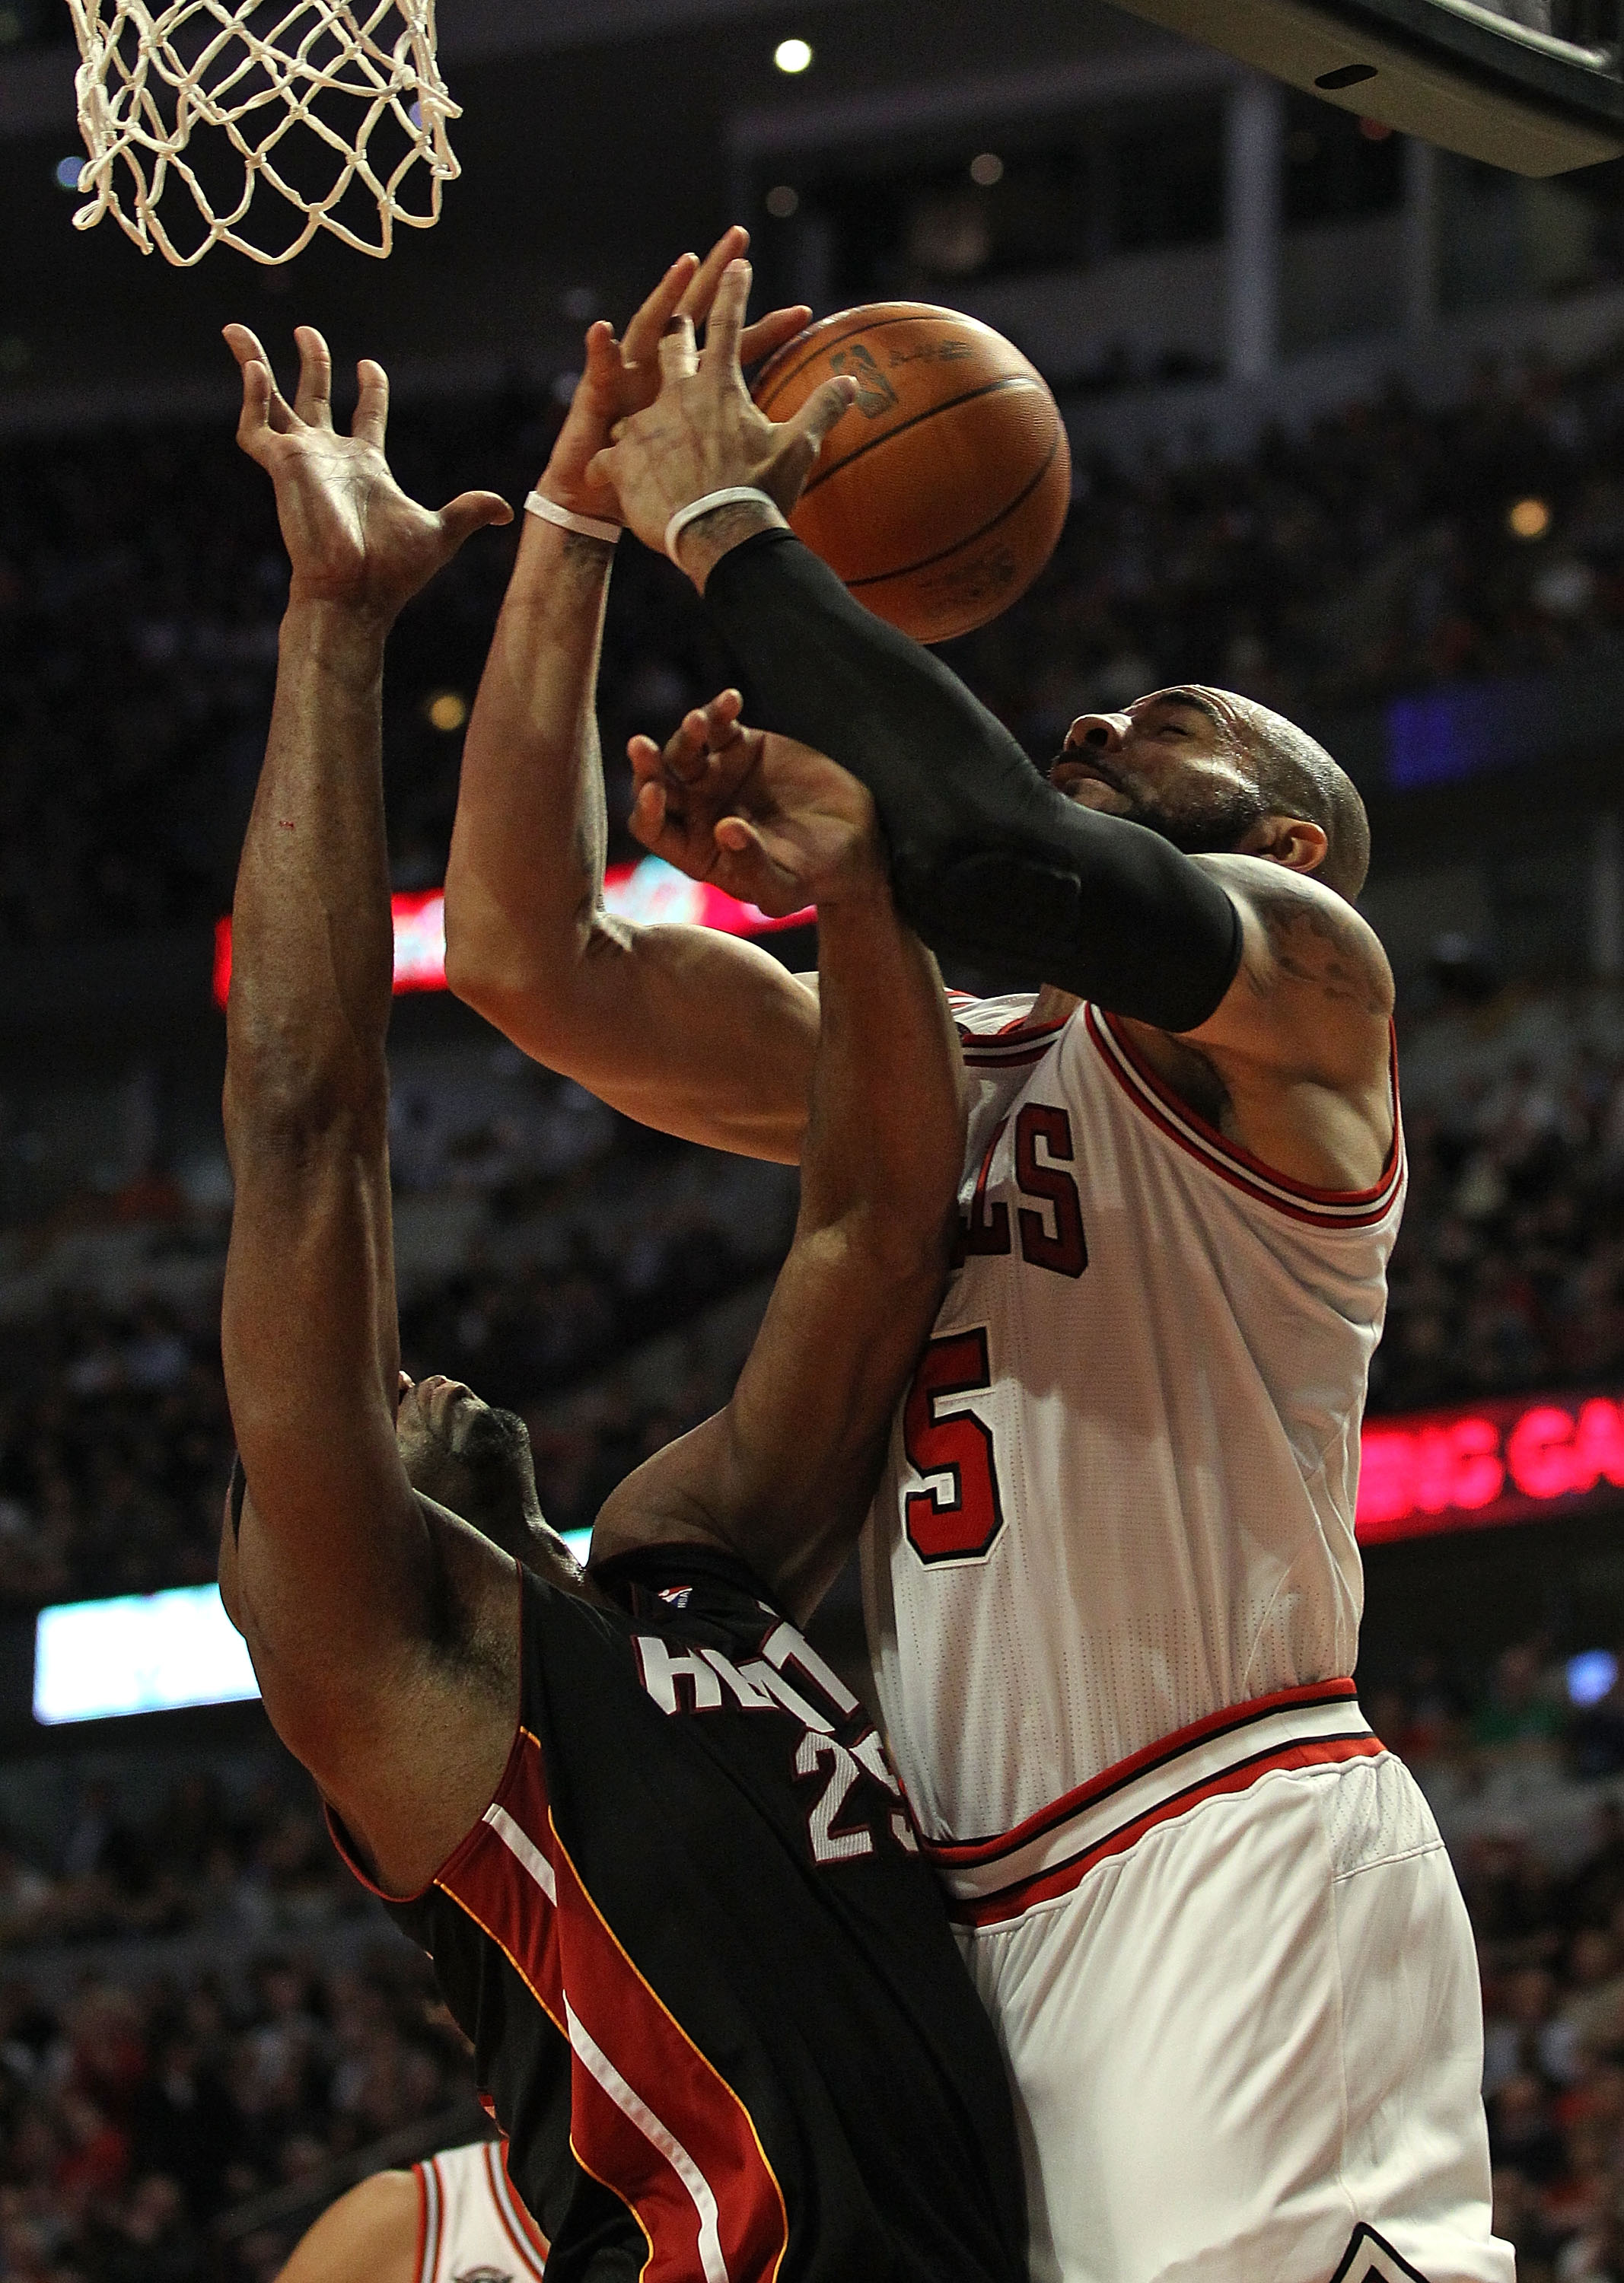 CHICAGO, IL - FEBRUARY 24: Carlos Boozer #5 of the Chicago Bulls is fouled while shooting by Eric Dampier #25 of the Miami Heat at the United Center on February 24, 2011 in Chicago, Illinois. The Bulls defeated the Heat 93-89. NOTE TO USER: User expressly